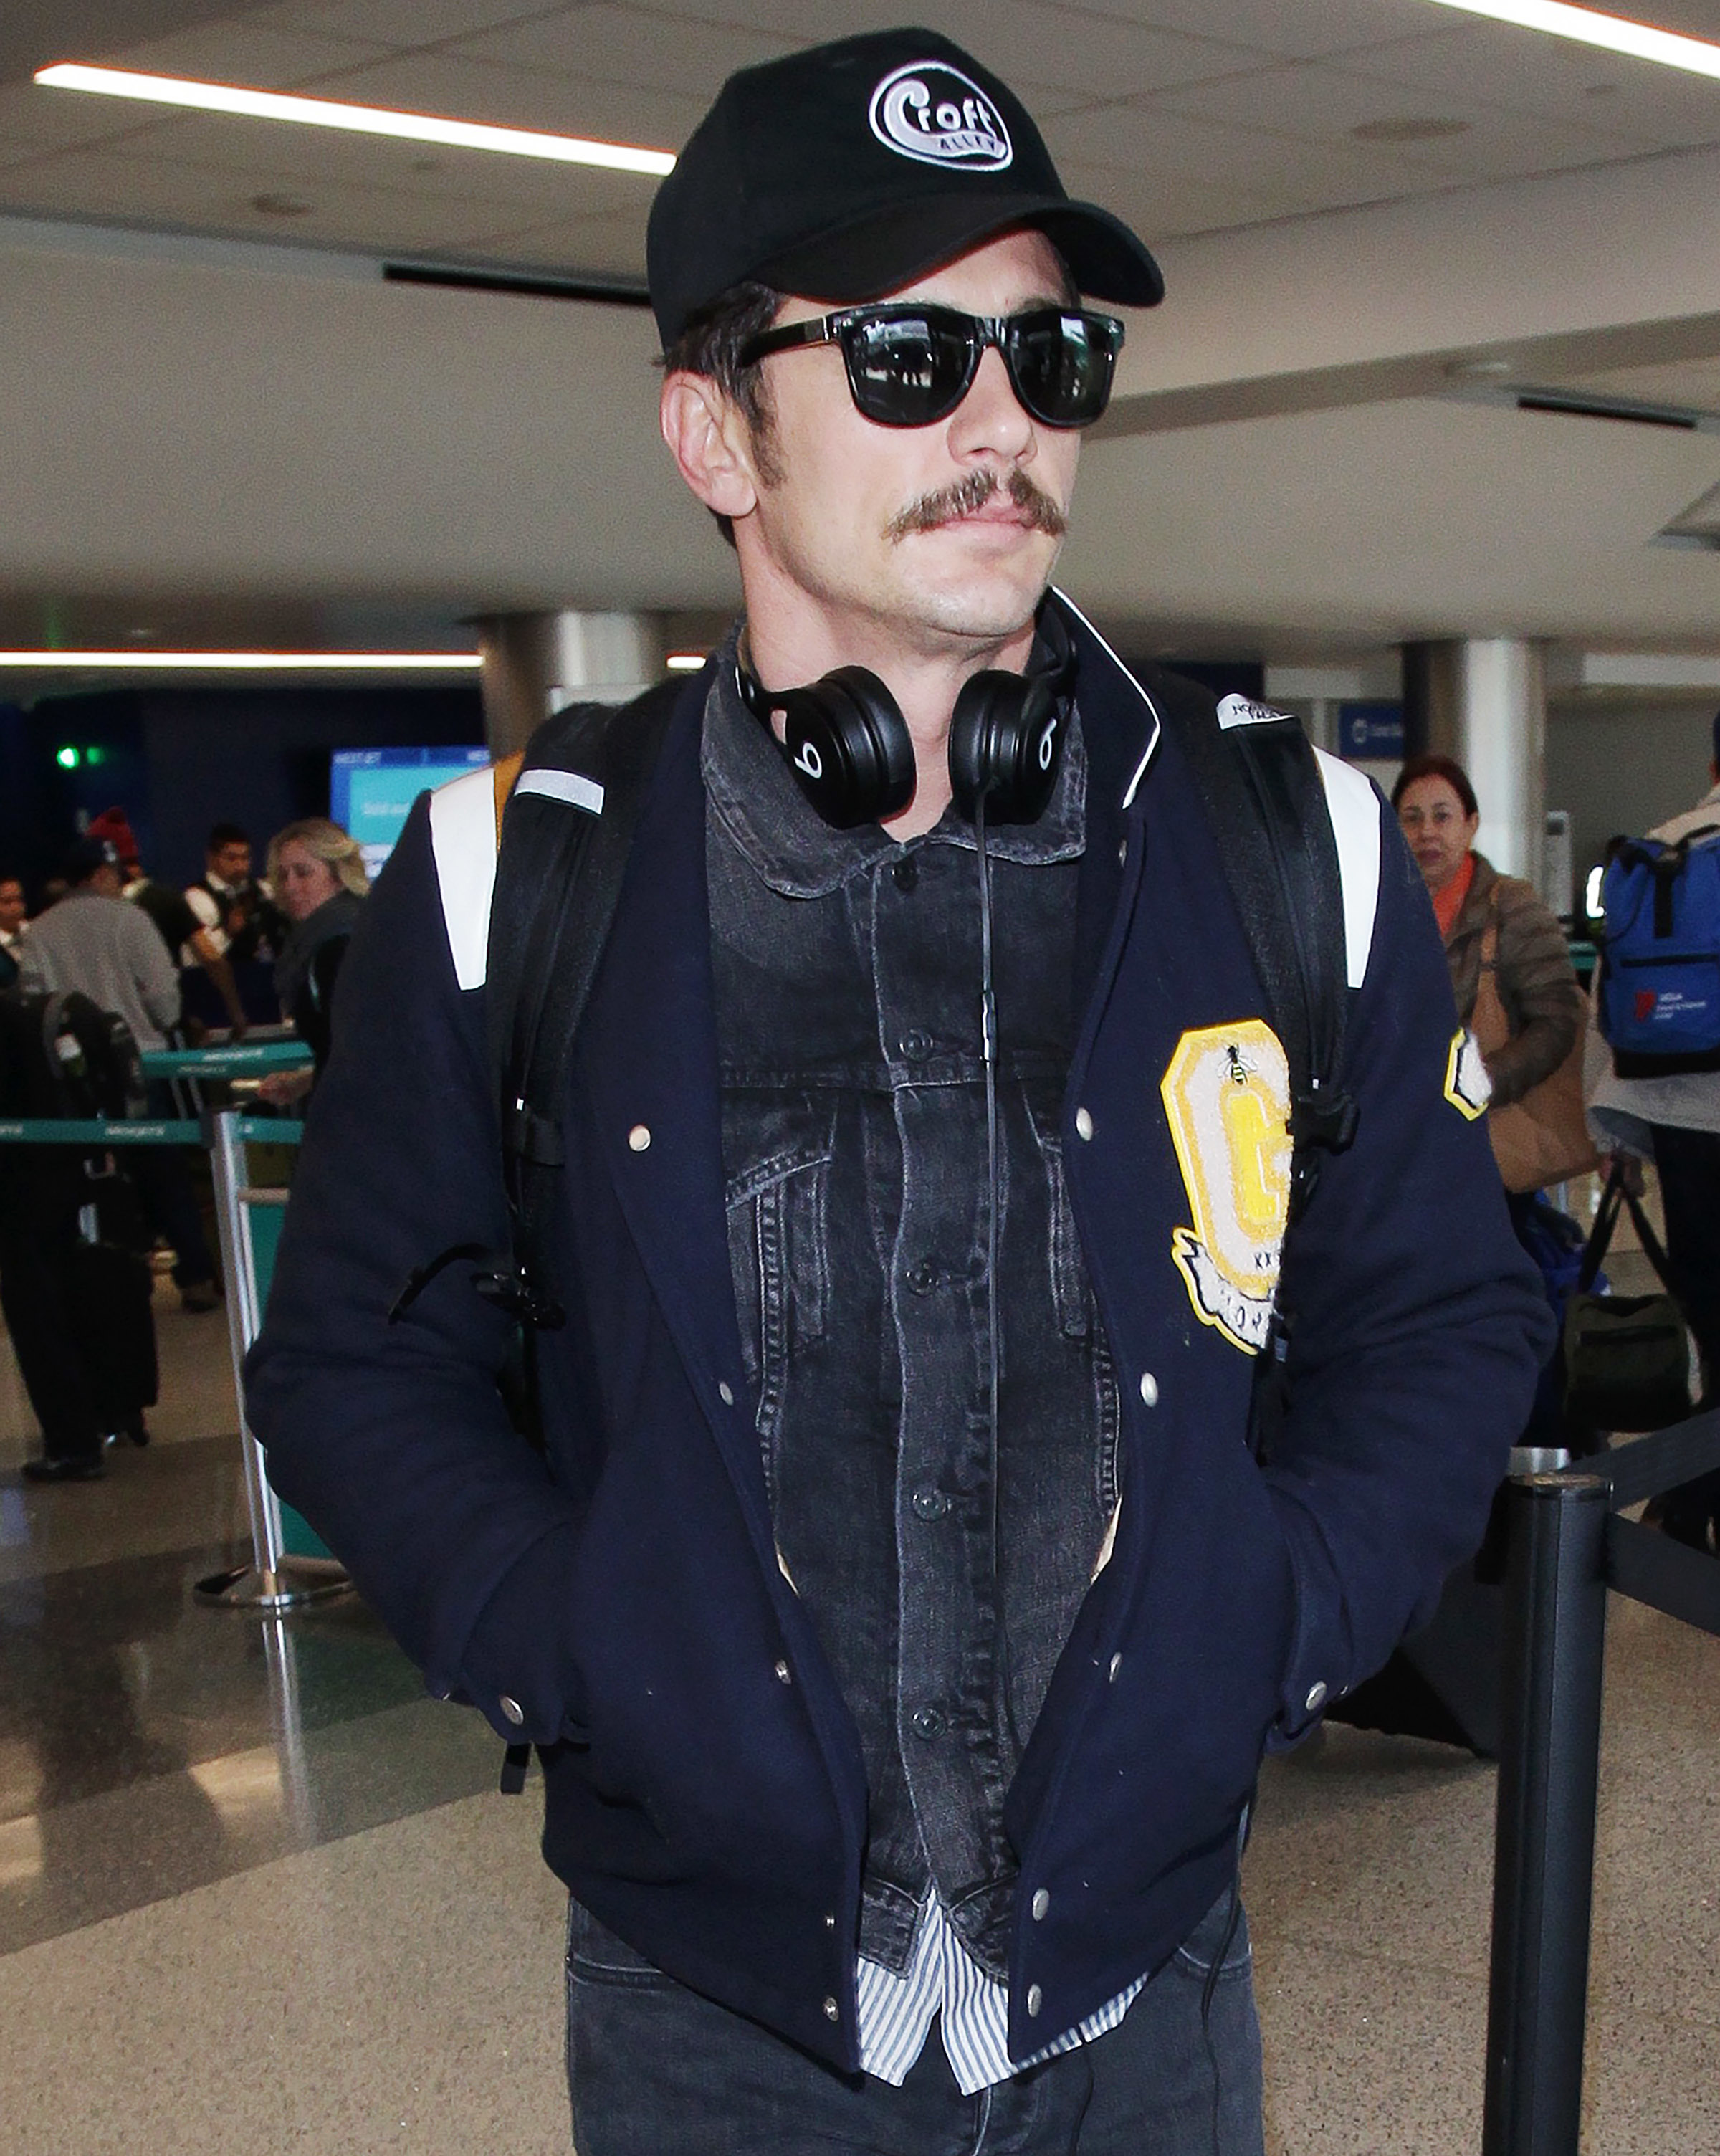 James Franco arrives at LAX International Airport in Los Angeles on April 12, 2018.